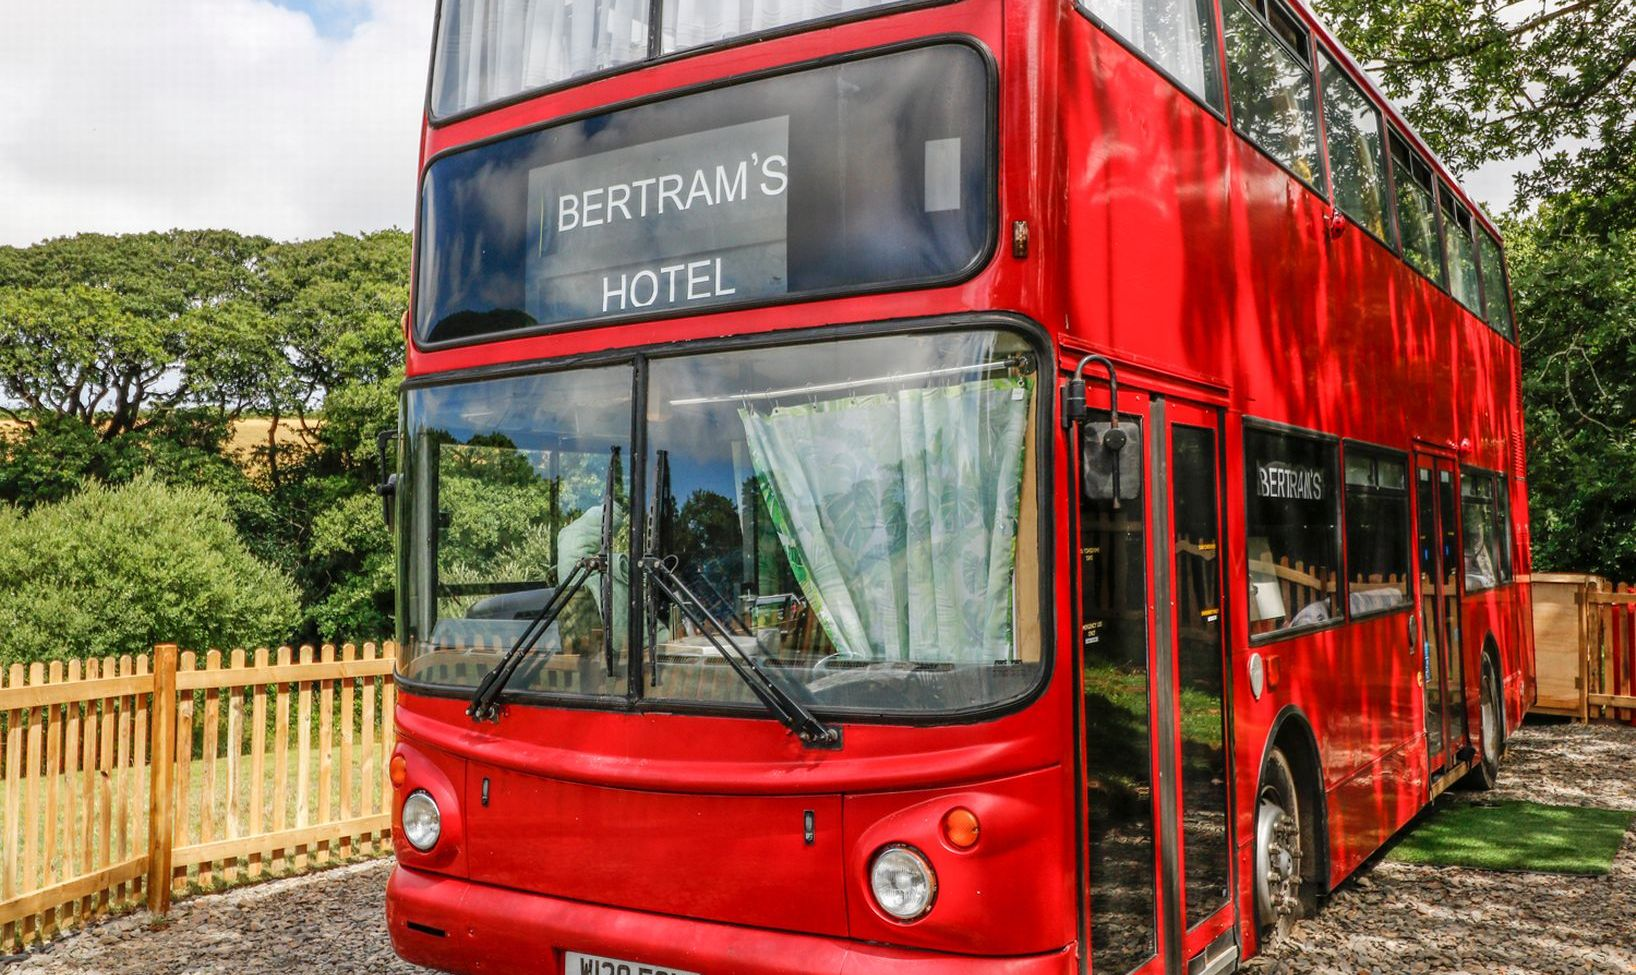 A Harry Potter Styled Double Decker Bus Has Been Converted